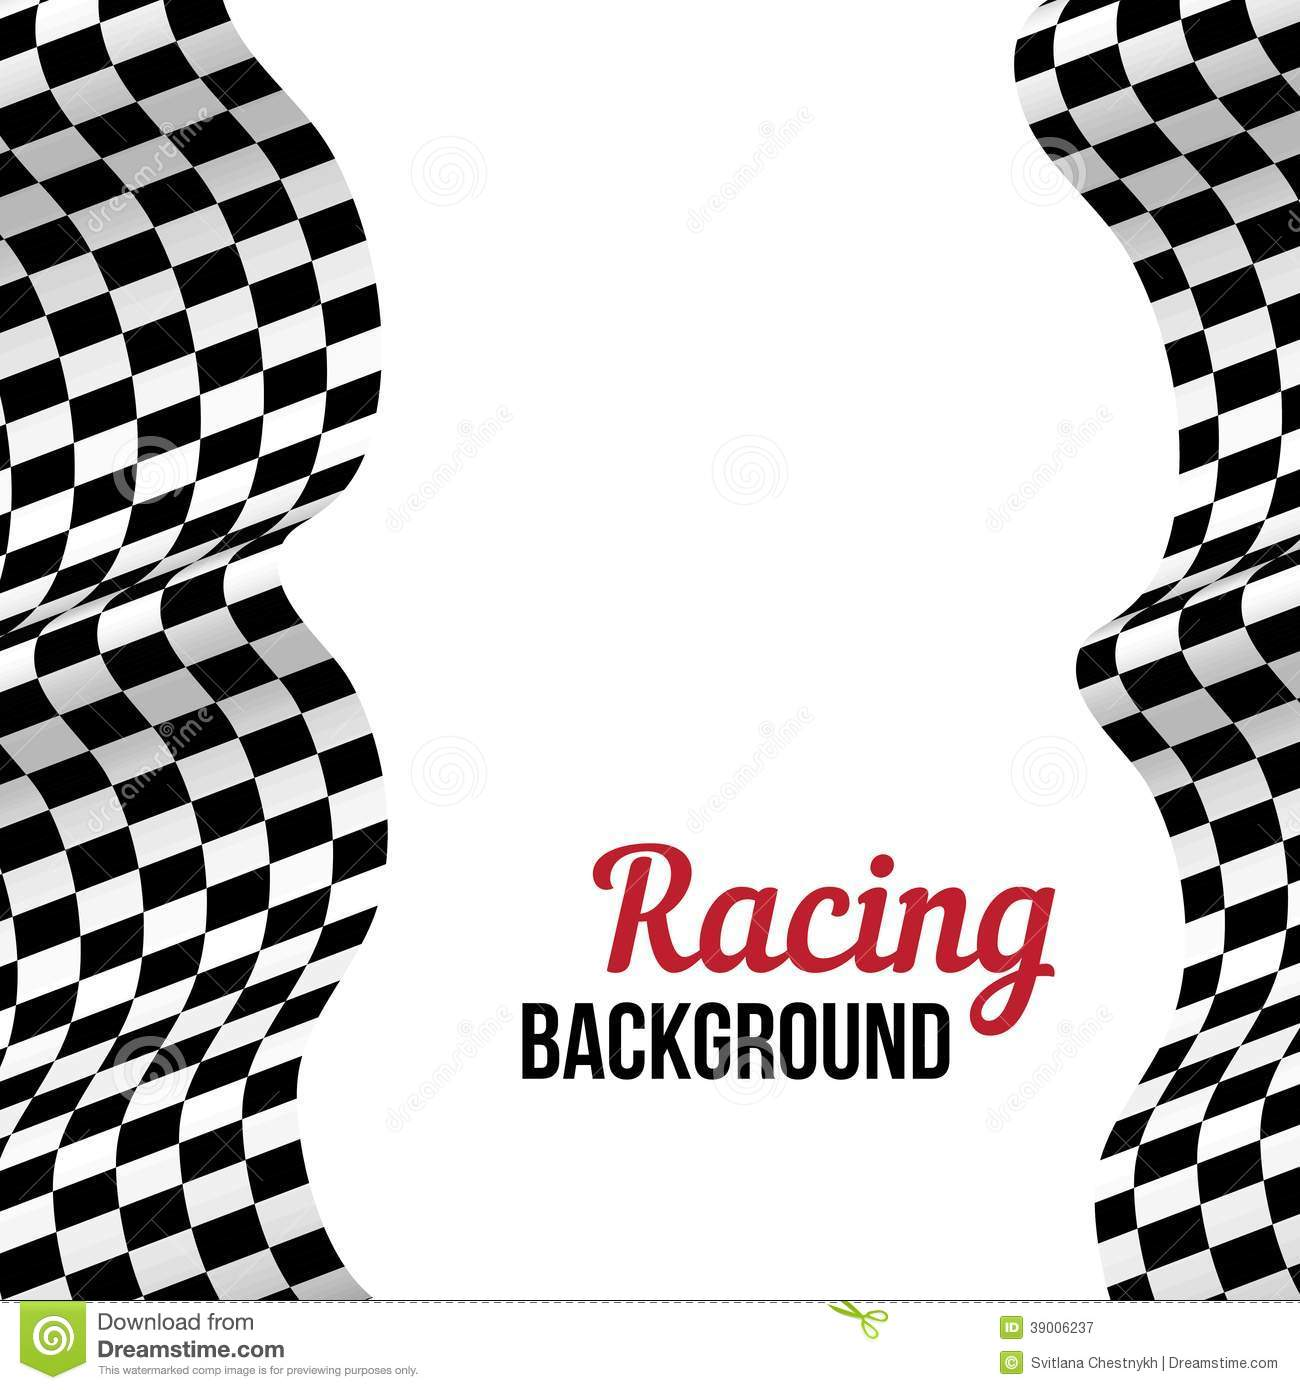 Bil 02 761 in addition Stock Car Coloring Pages likewise 2009 11 27 archive additionally Coloring Pages Book For Kids Boys   images Free Truck Coloring Pages 04 CPBKB in addition Motor racing flags clip art 14738. on nascar car illustration